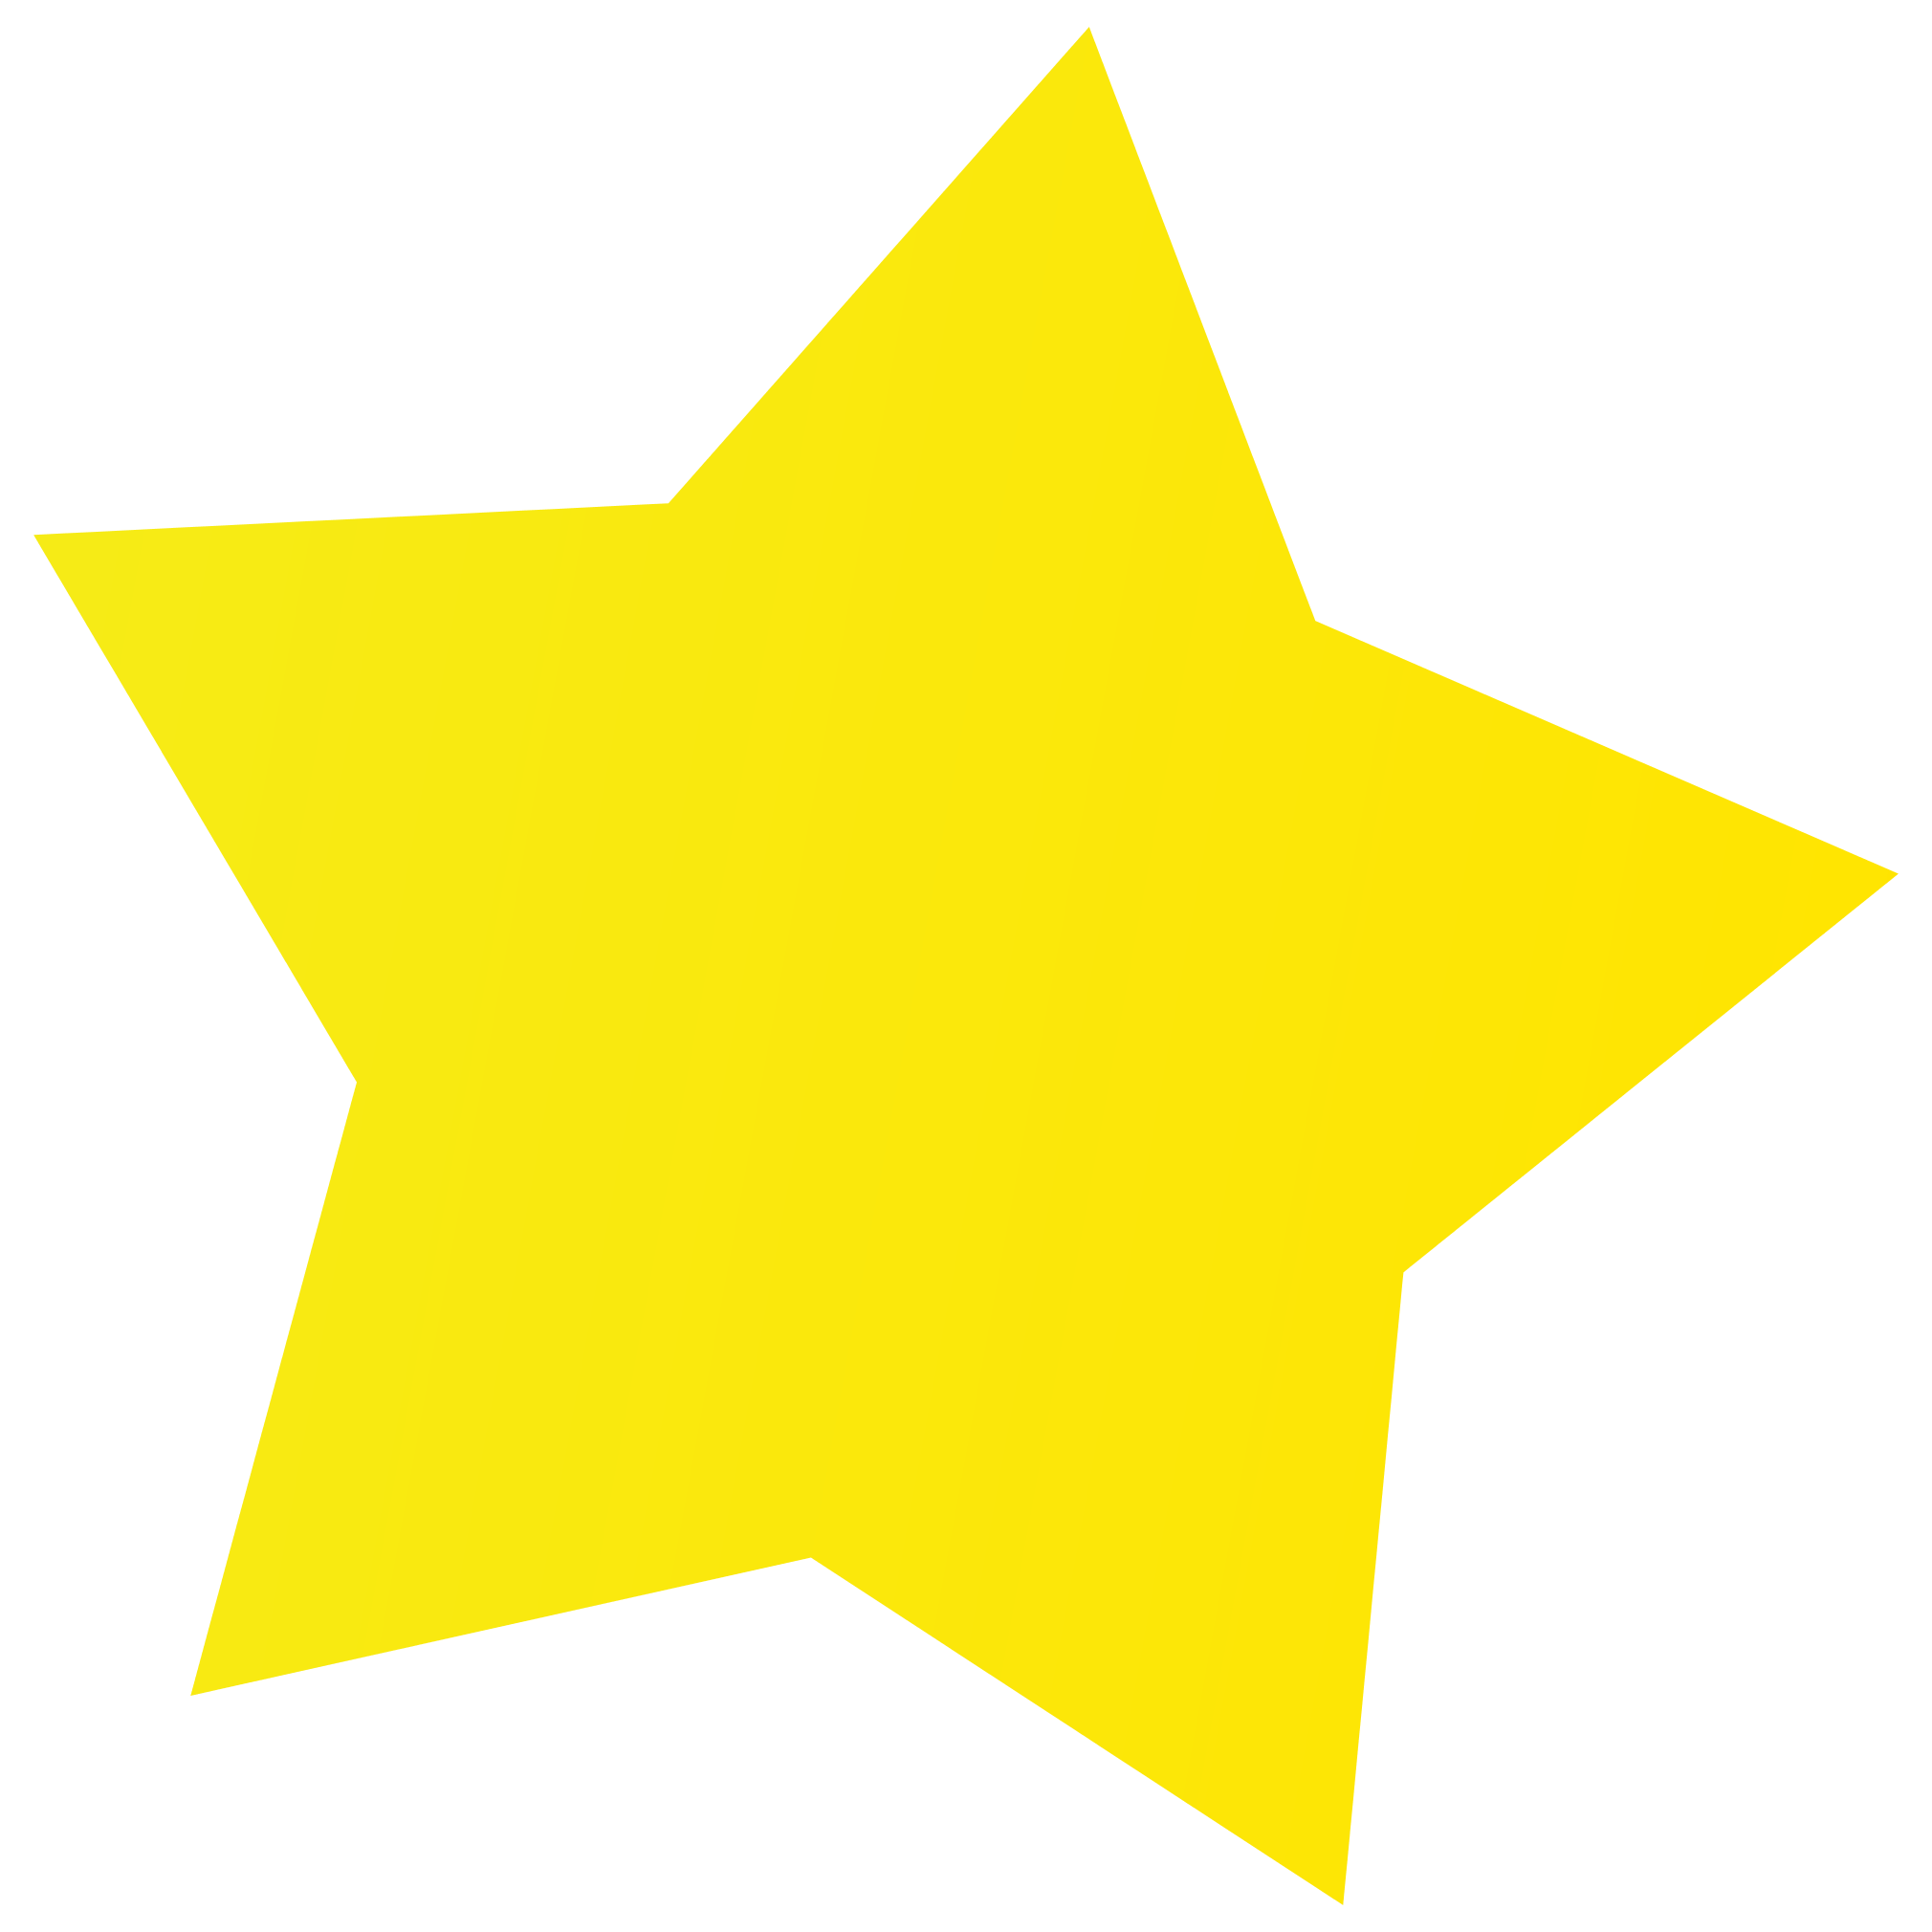 Planeten clipart yellow planet. Star png image leather